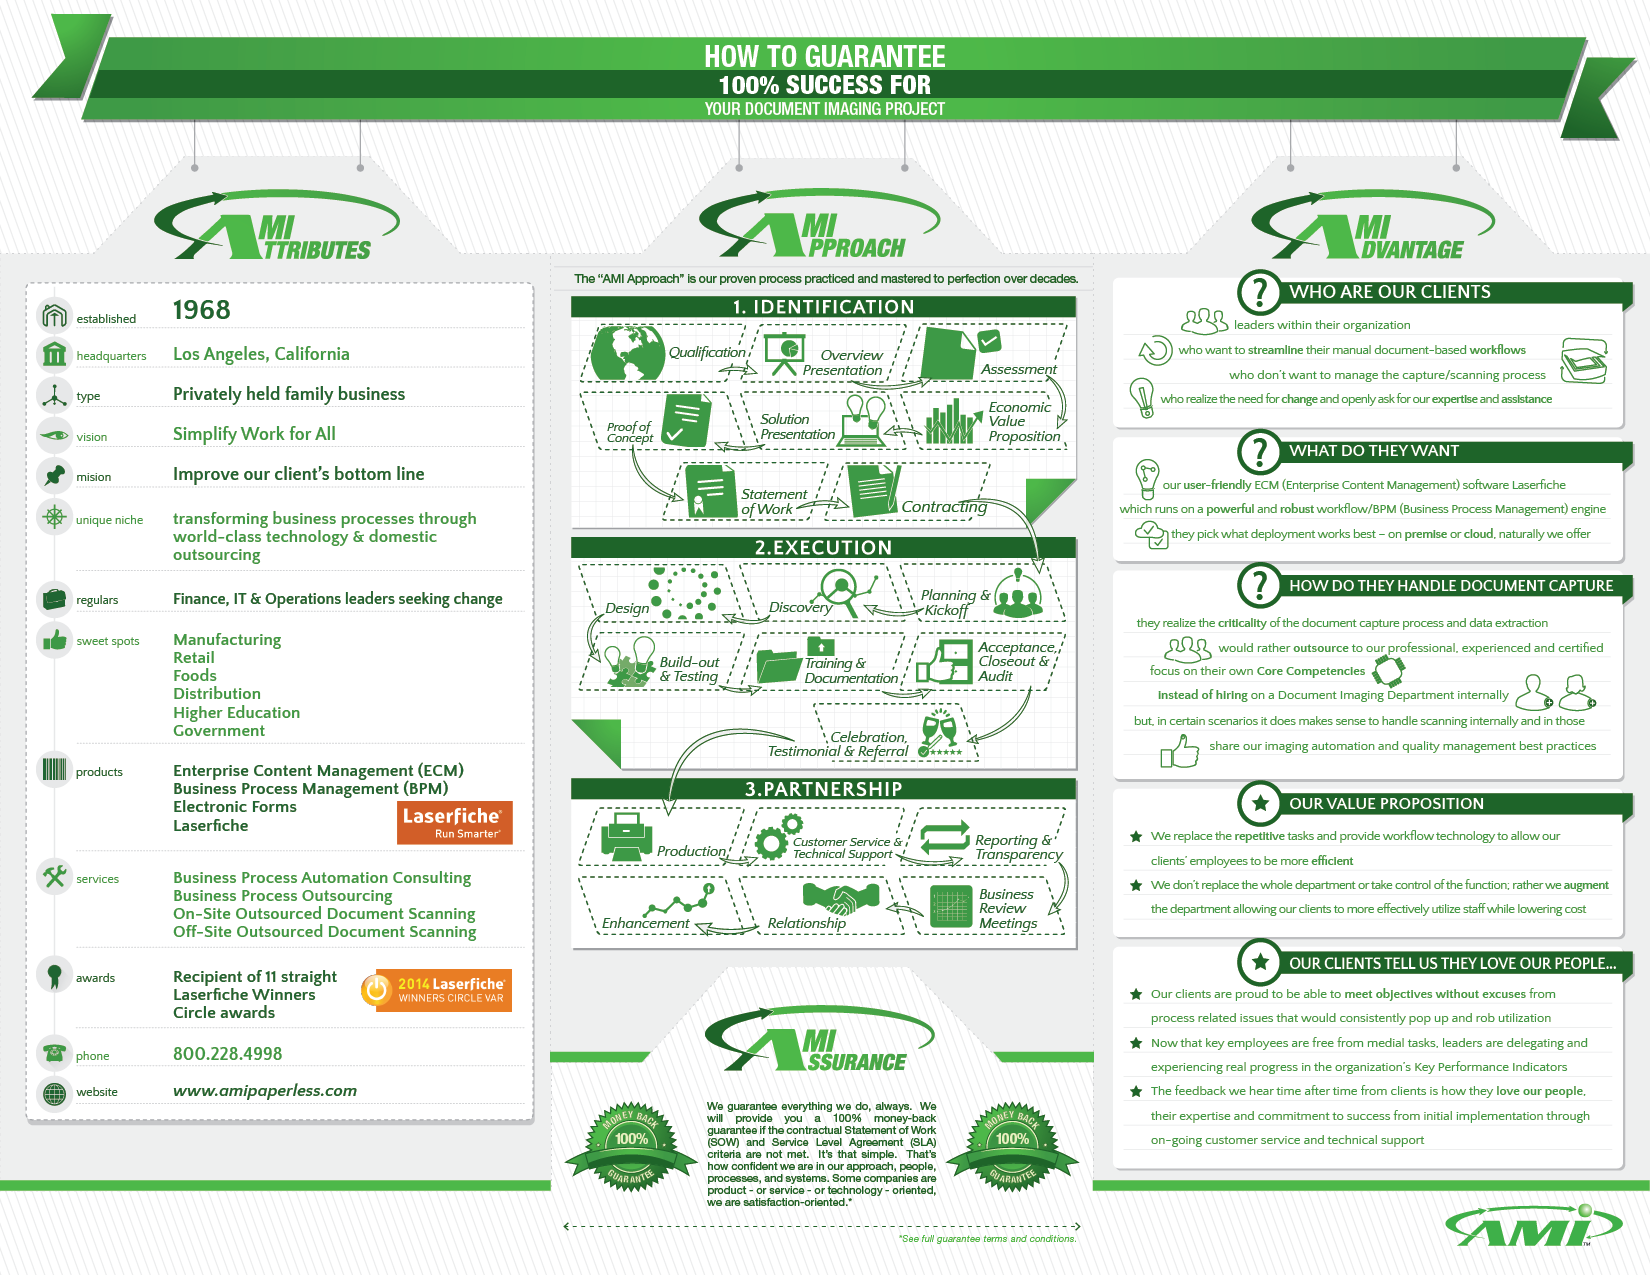 Fun Infographic for a Green Paperless B2B co to illustrate our Proven Process and Differentiators